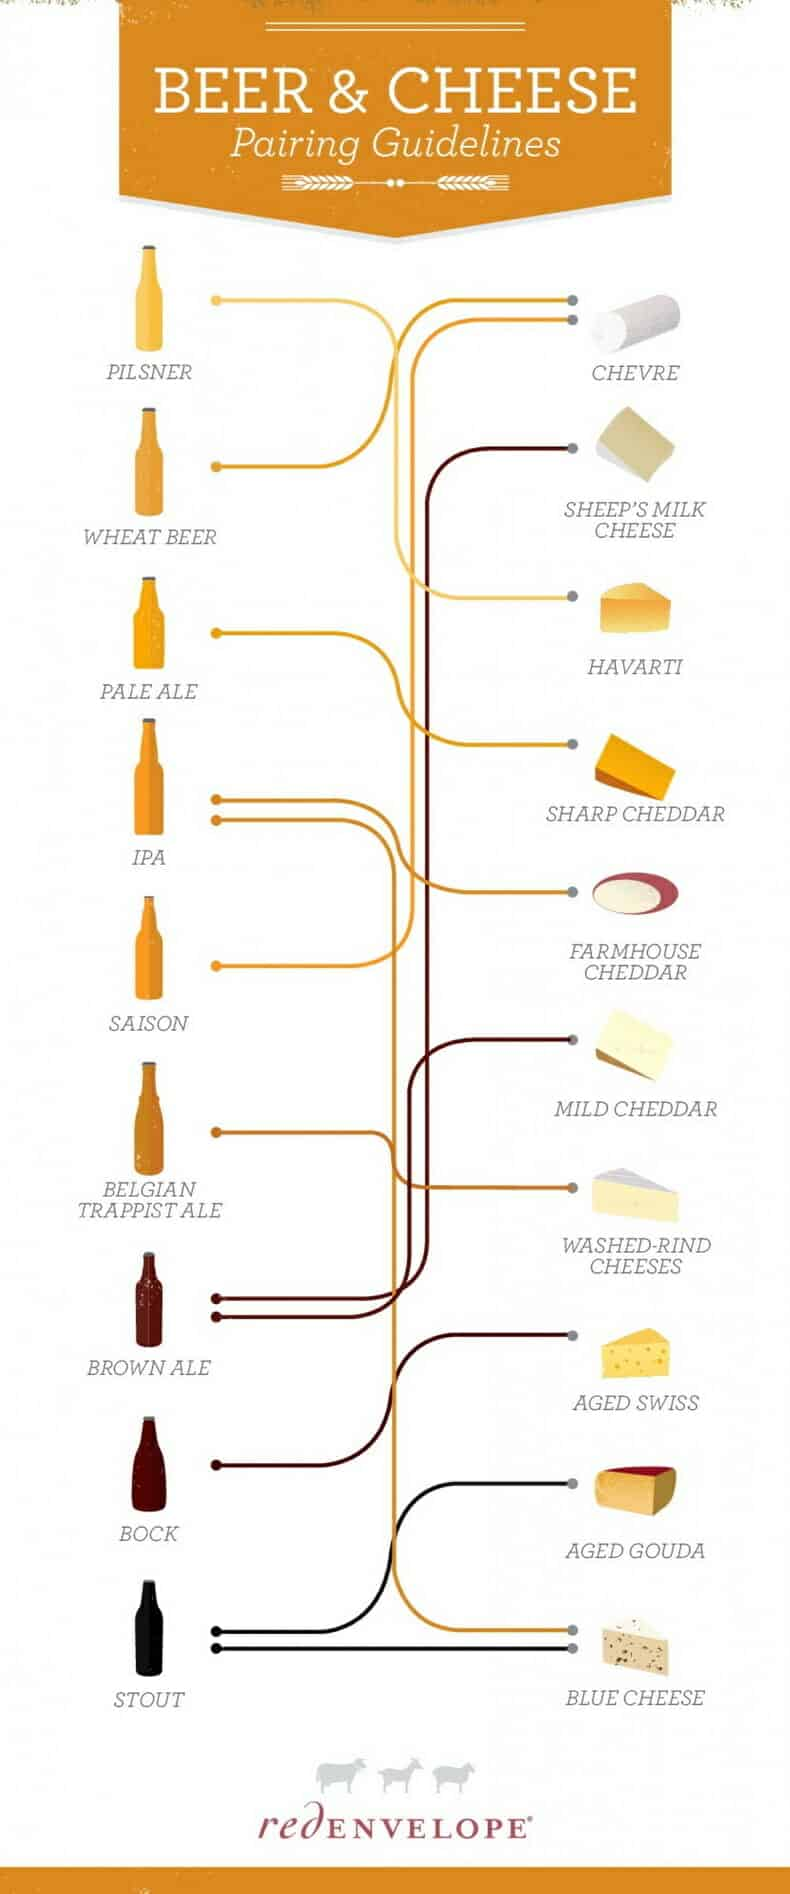 beer-and-cheese-pairing-guide 790